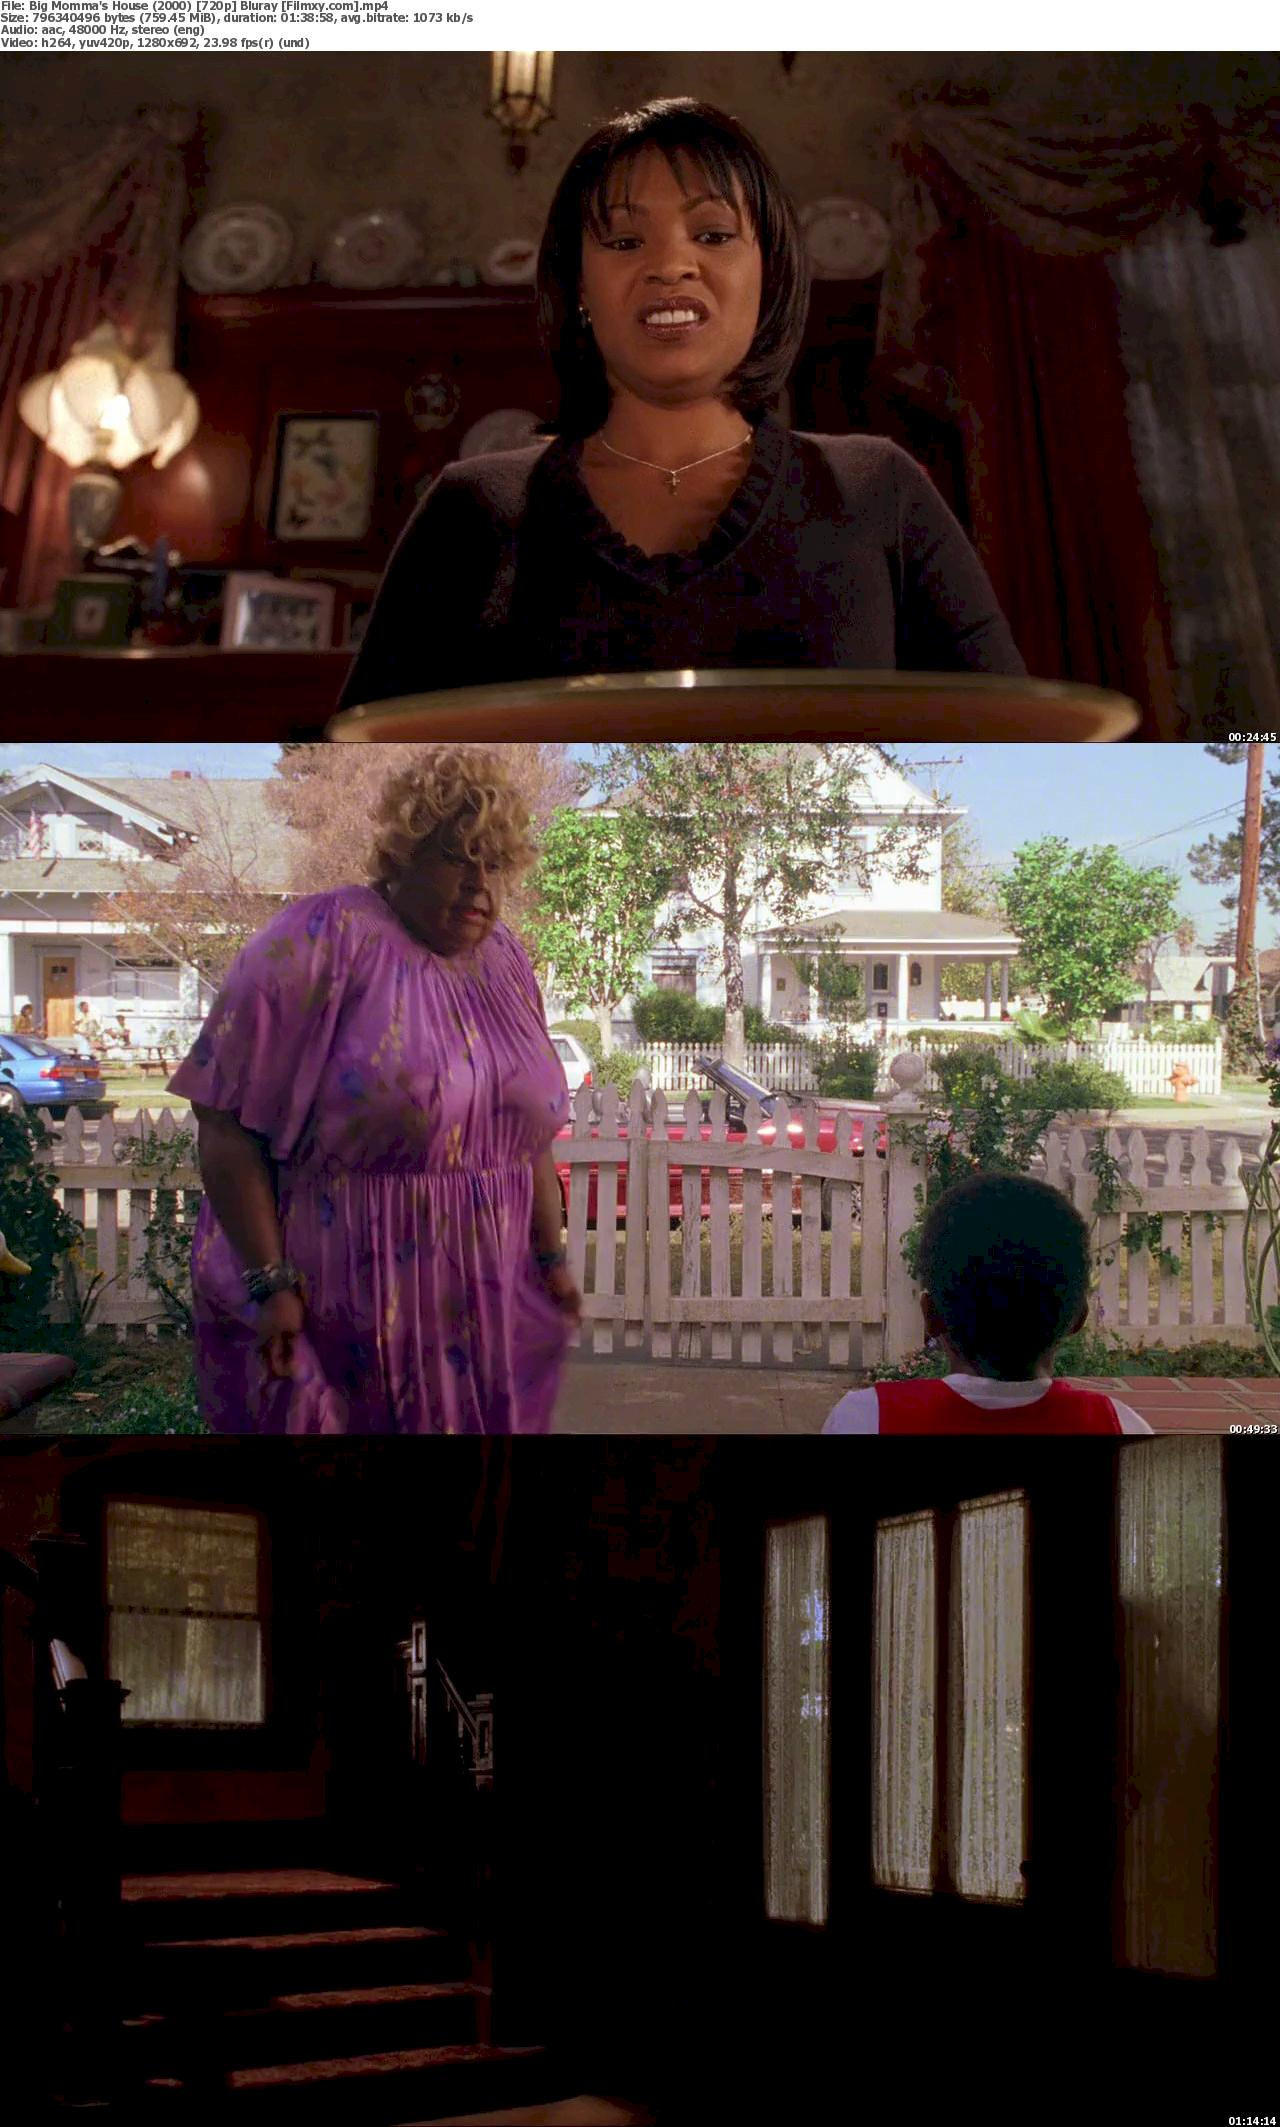 Big Momma's House (2000) [720p & 1080p] Bluray Free Movie Watch Online & Download 720p Screenshot